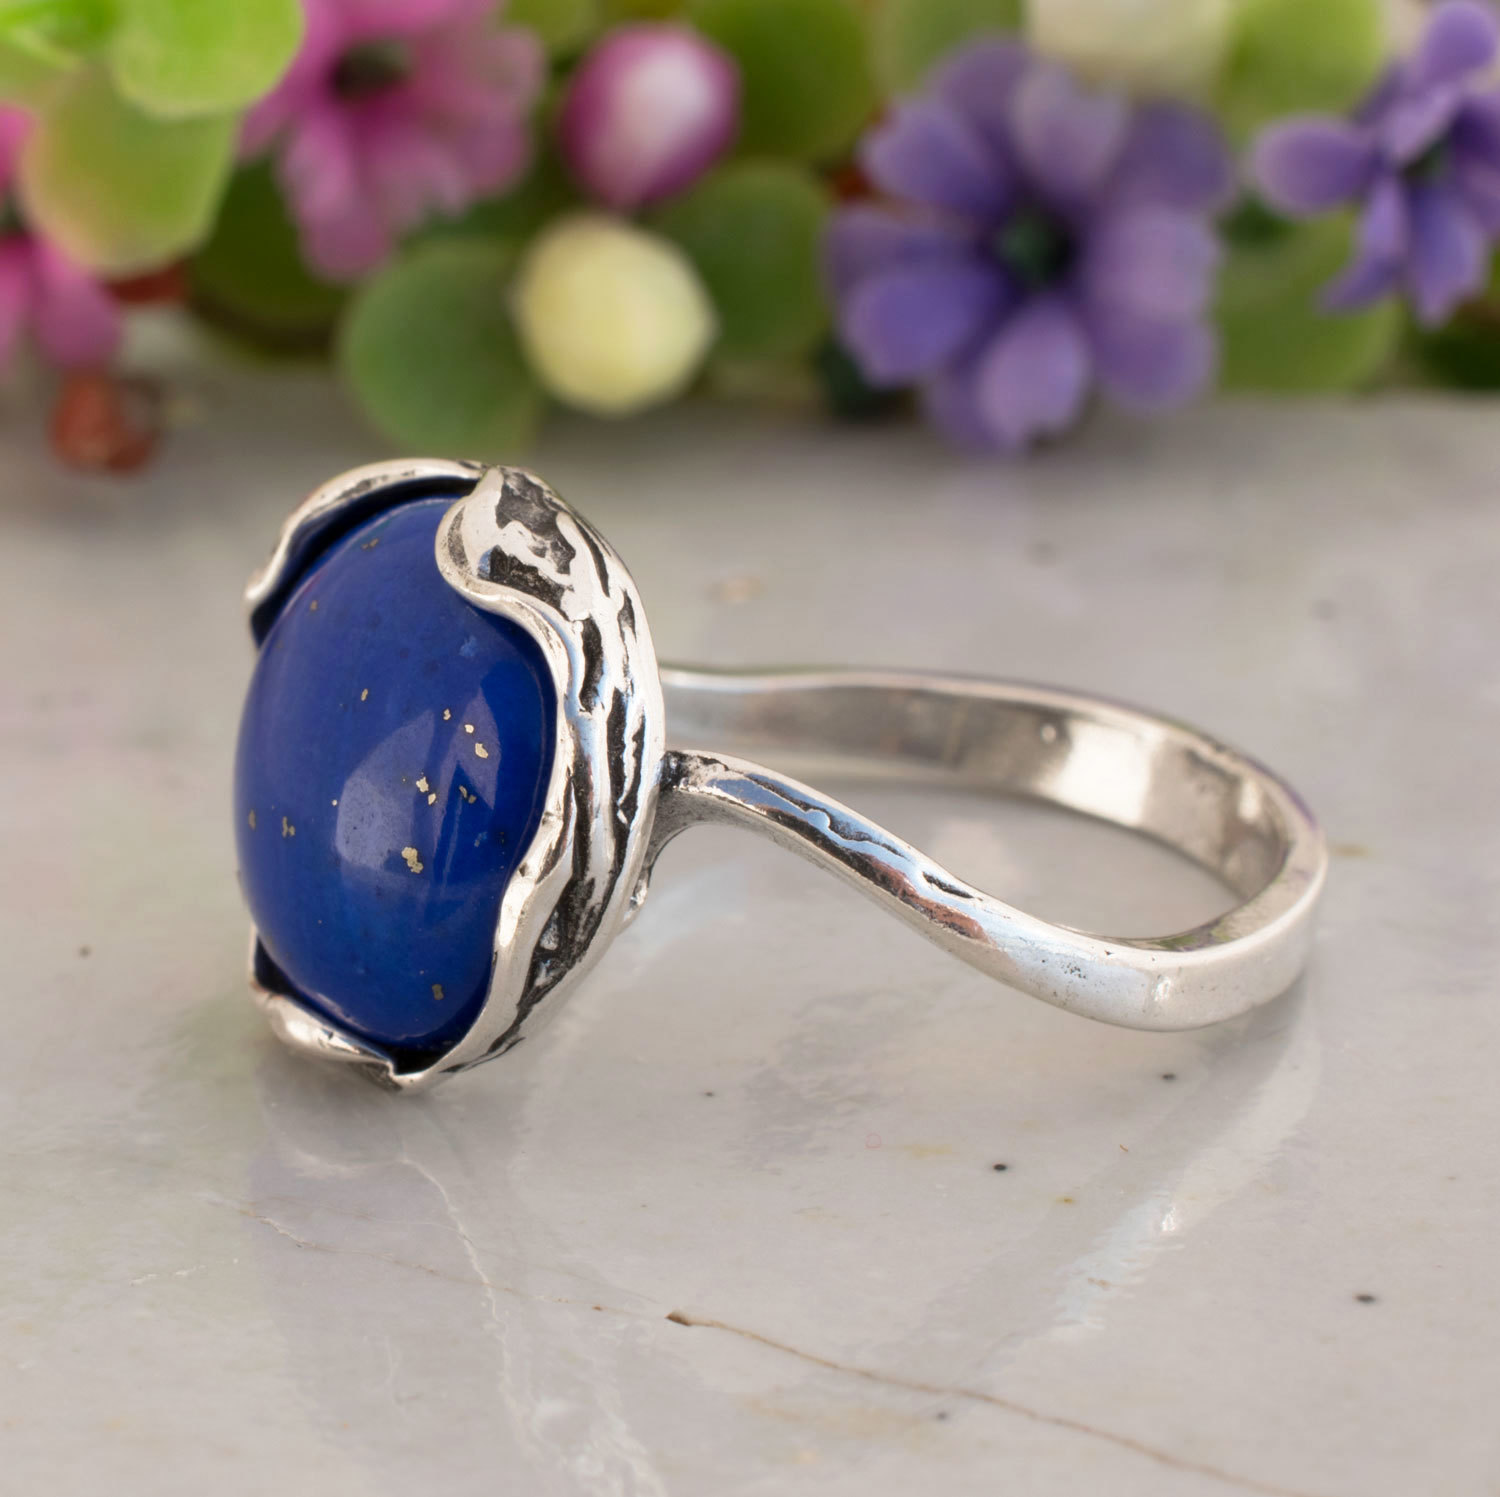 Handmade Jewelry Outstanding Blue Lapis Silver Plated 4 Grams Ring 8.25 US